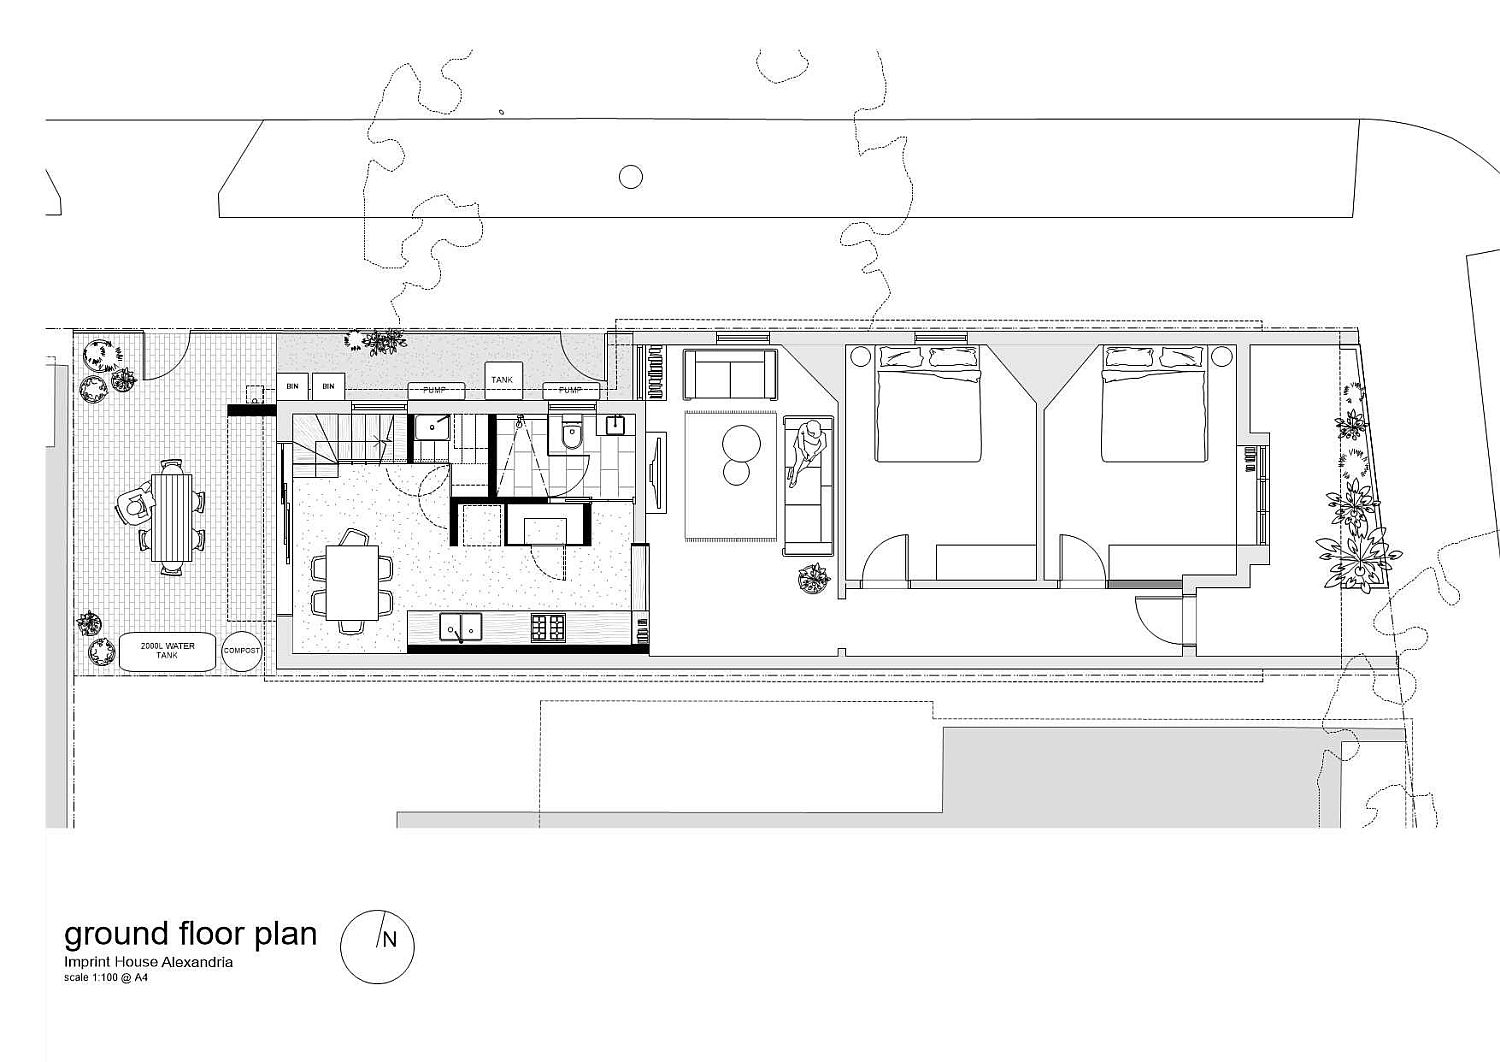 Ground floor plan of the Imprint House